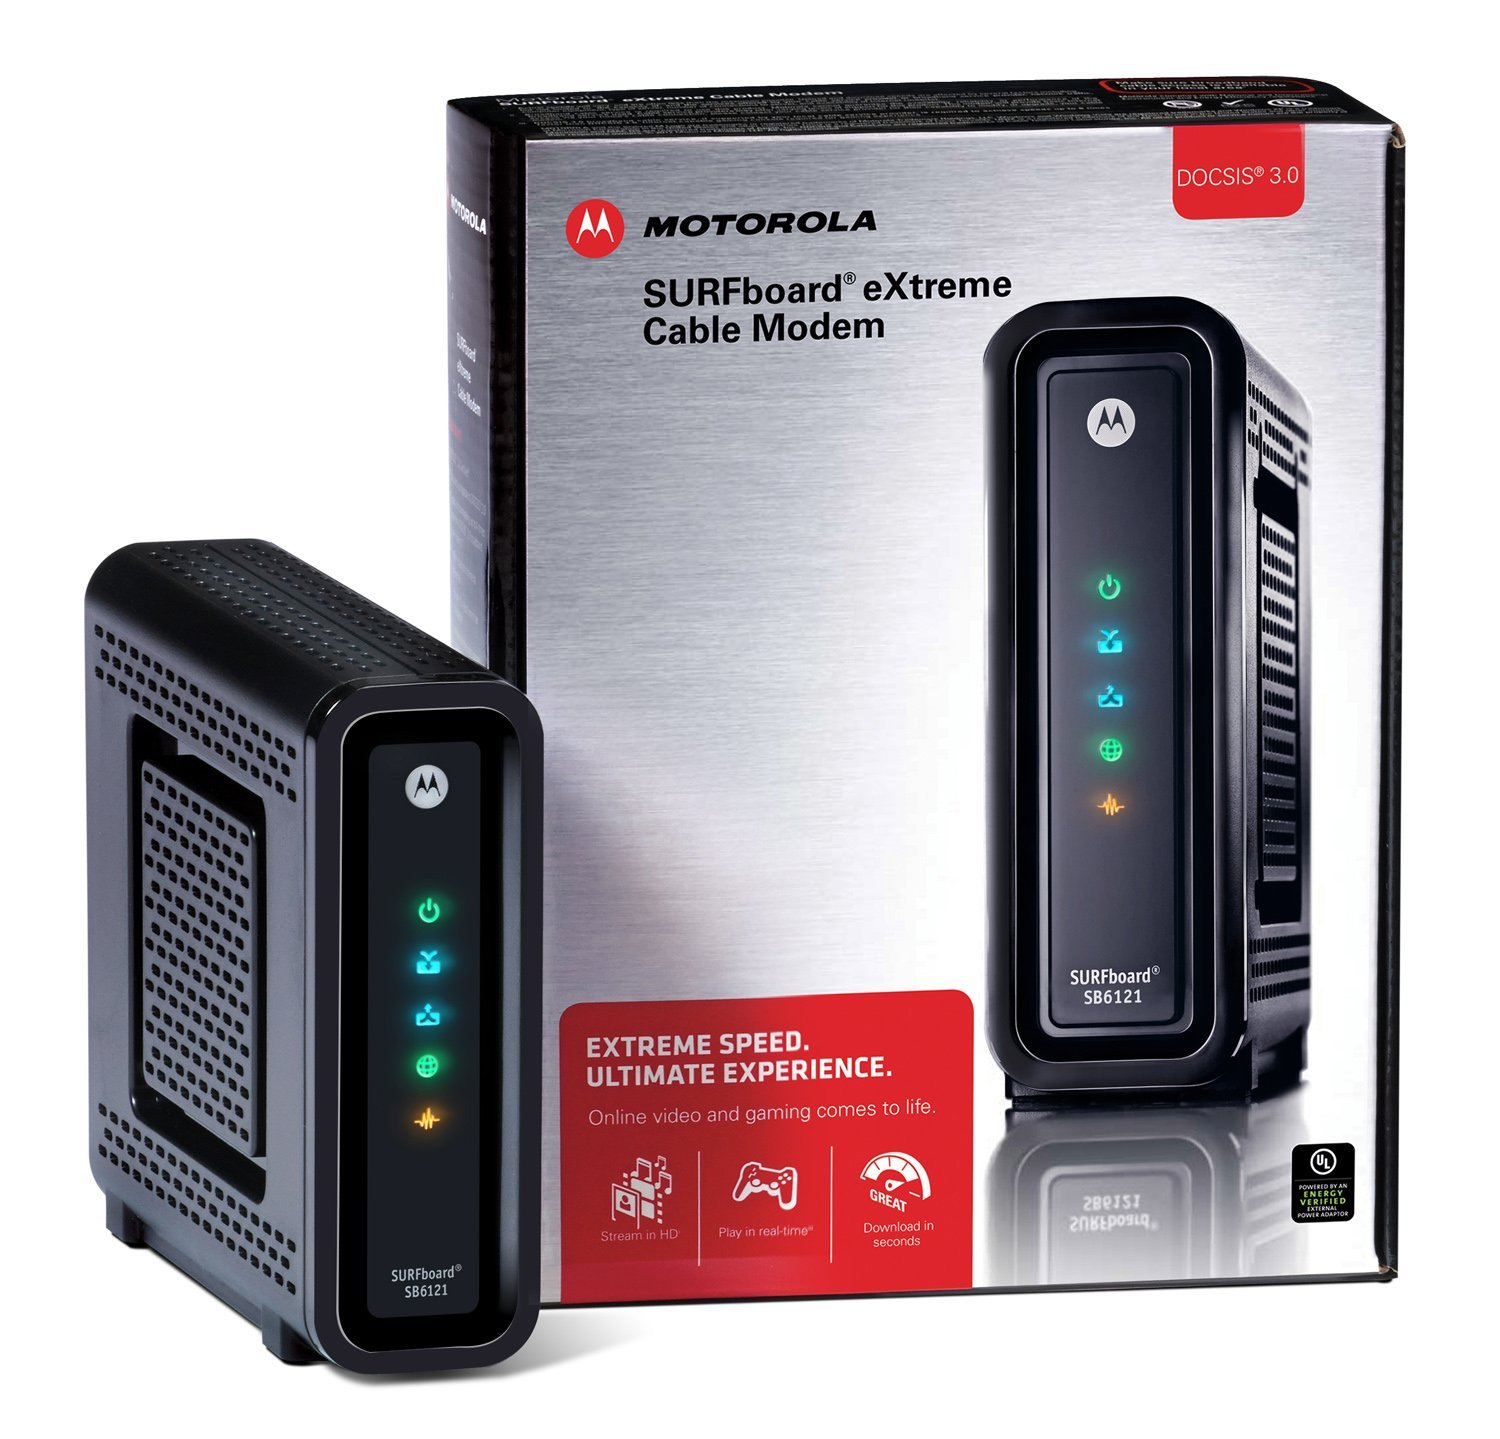 Top 10 Best Cable Modems 2018